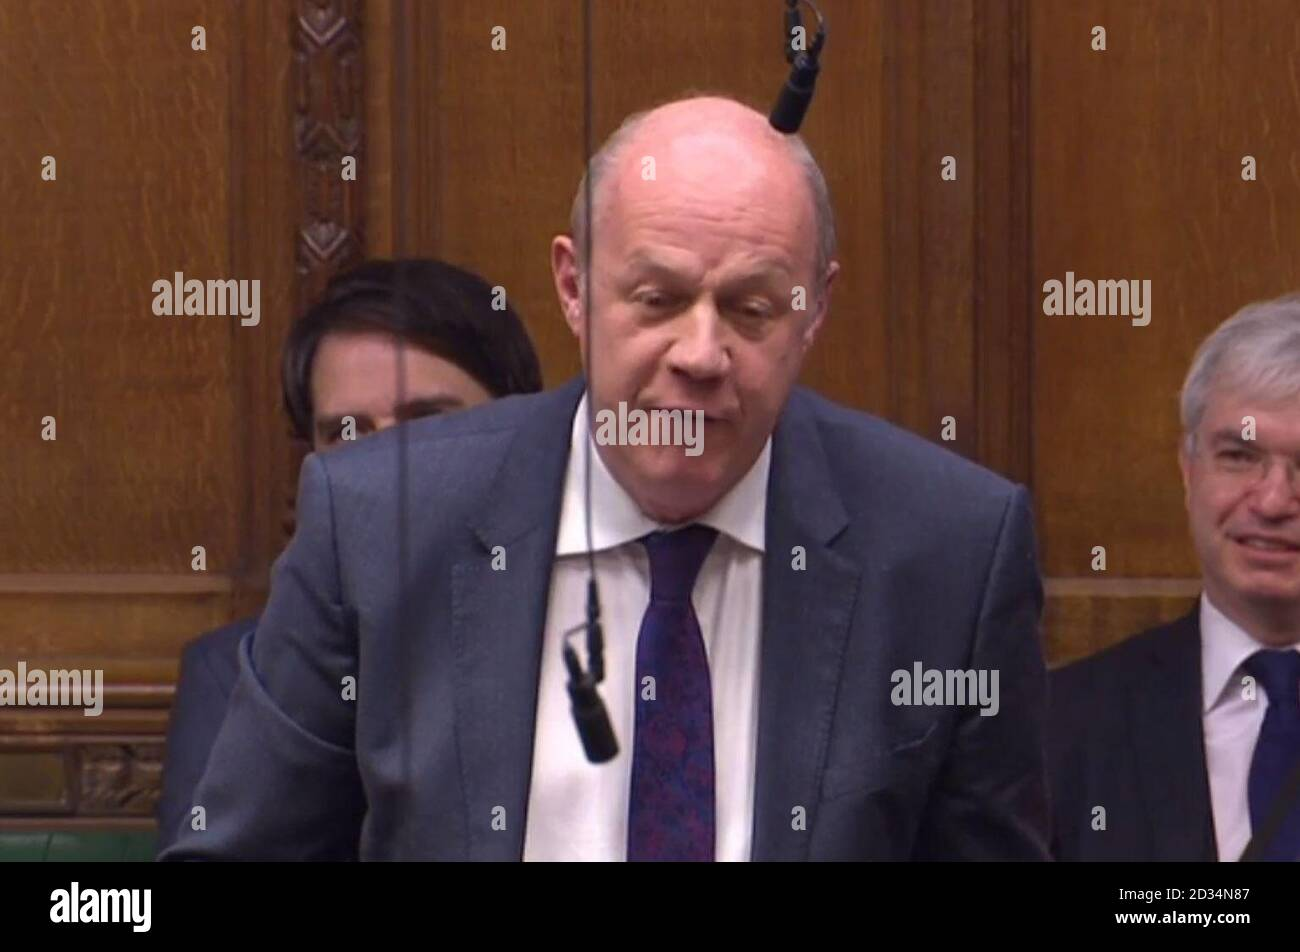 Former First Secretary of State Damian Green asks a question from the backbenches during Prime Minister's Questions in the House of Commons, London. Stock Photo